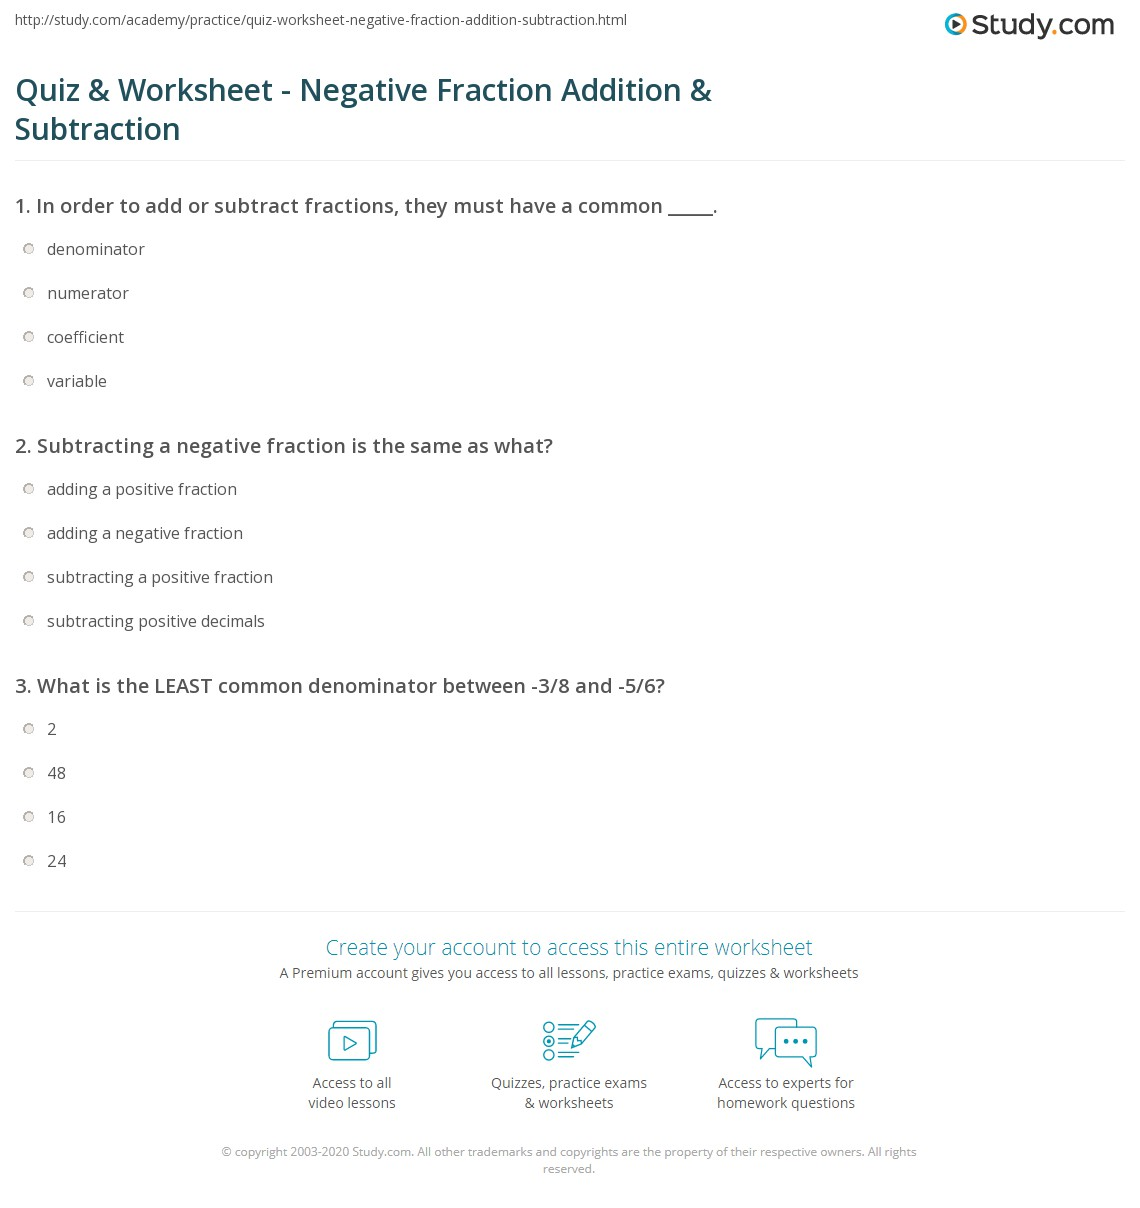 worksheet Addition And Subtraction Fractions Worksheets quiz worksheet negative fraction addition subtraction print adding subtracting fractions worksheet